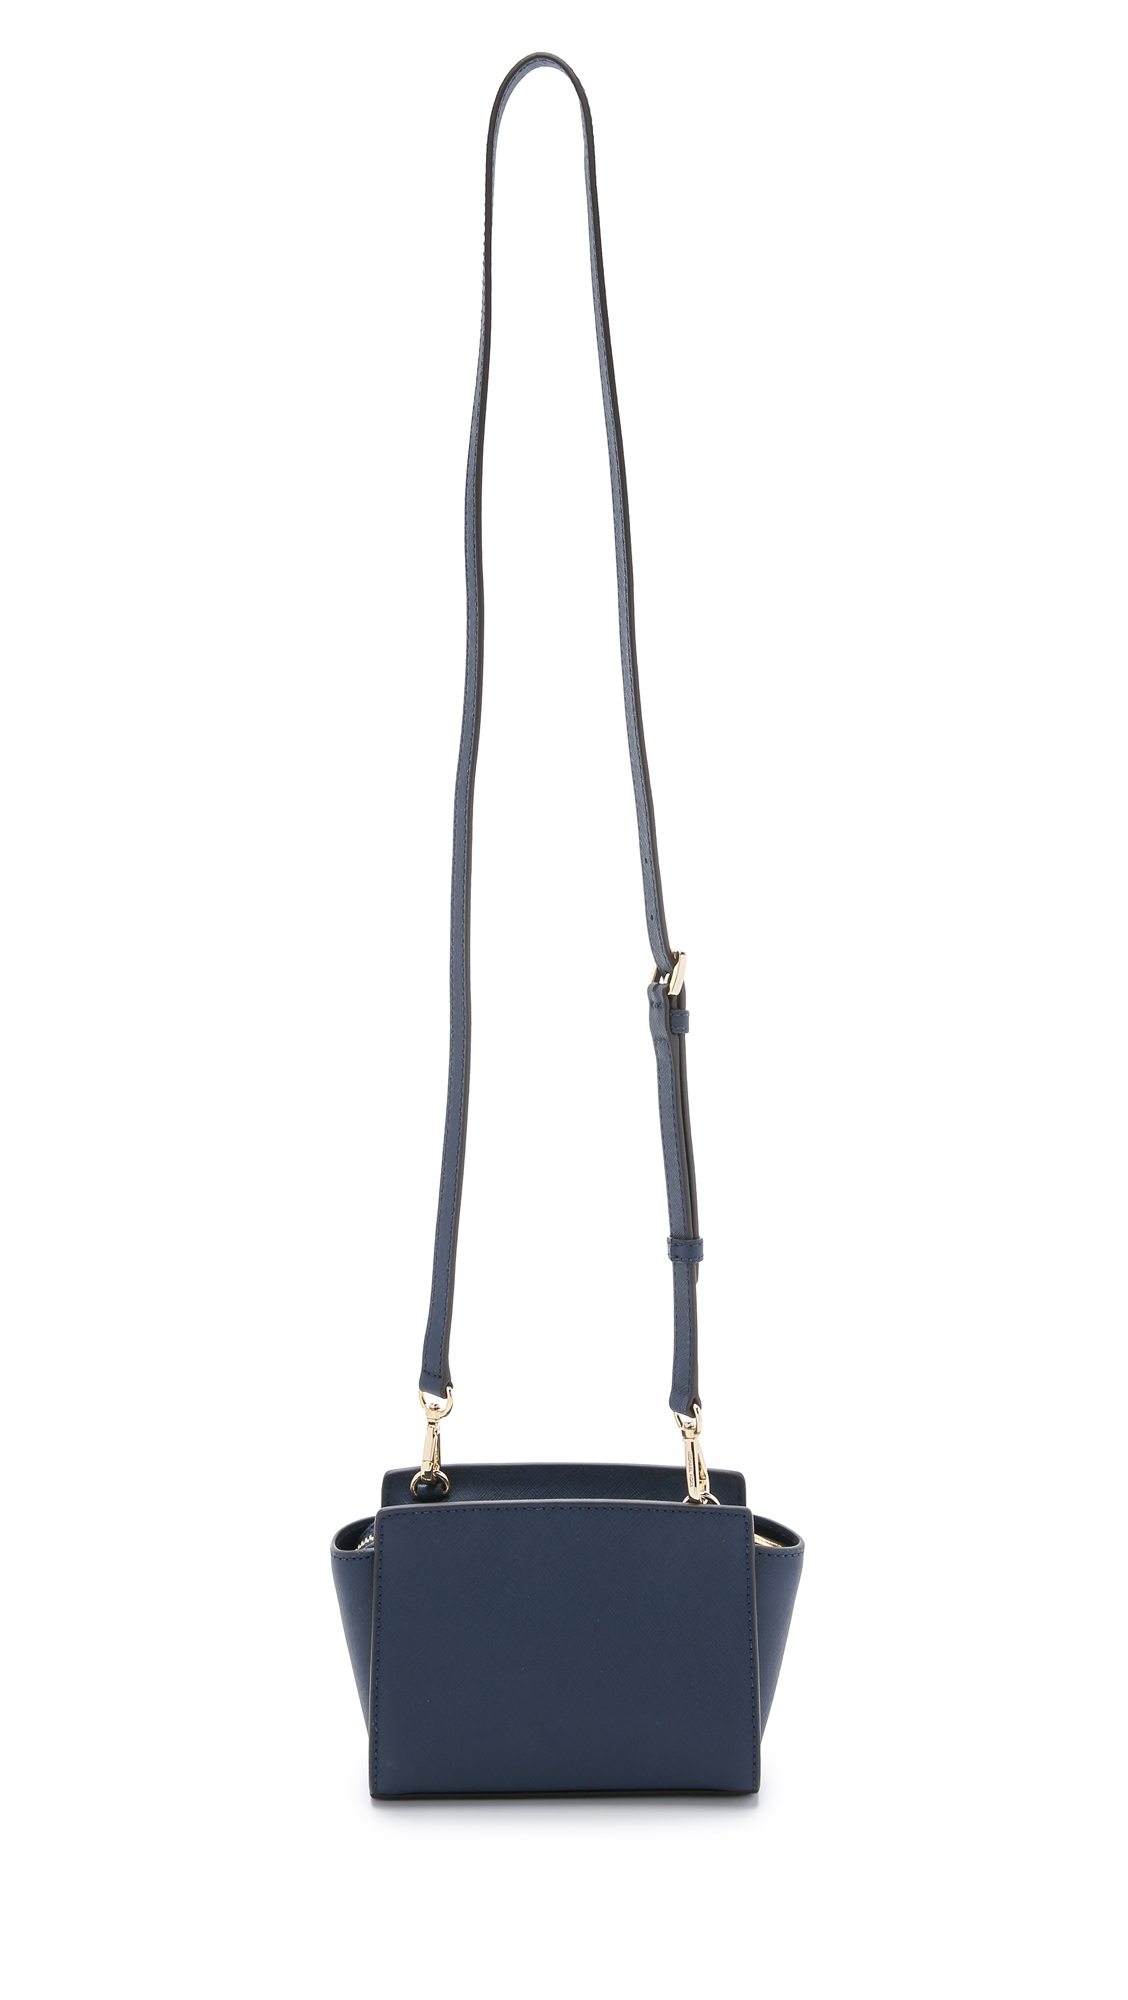 5793e0ae4c5f Previously sold at Shopbop · Womens Michael By Michael Kors Selma Best ...